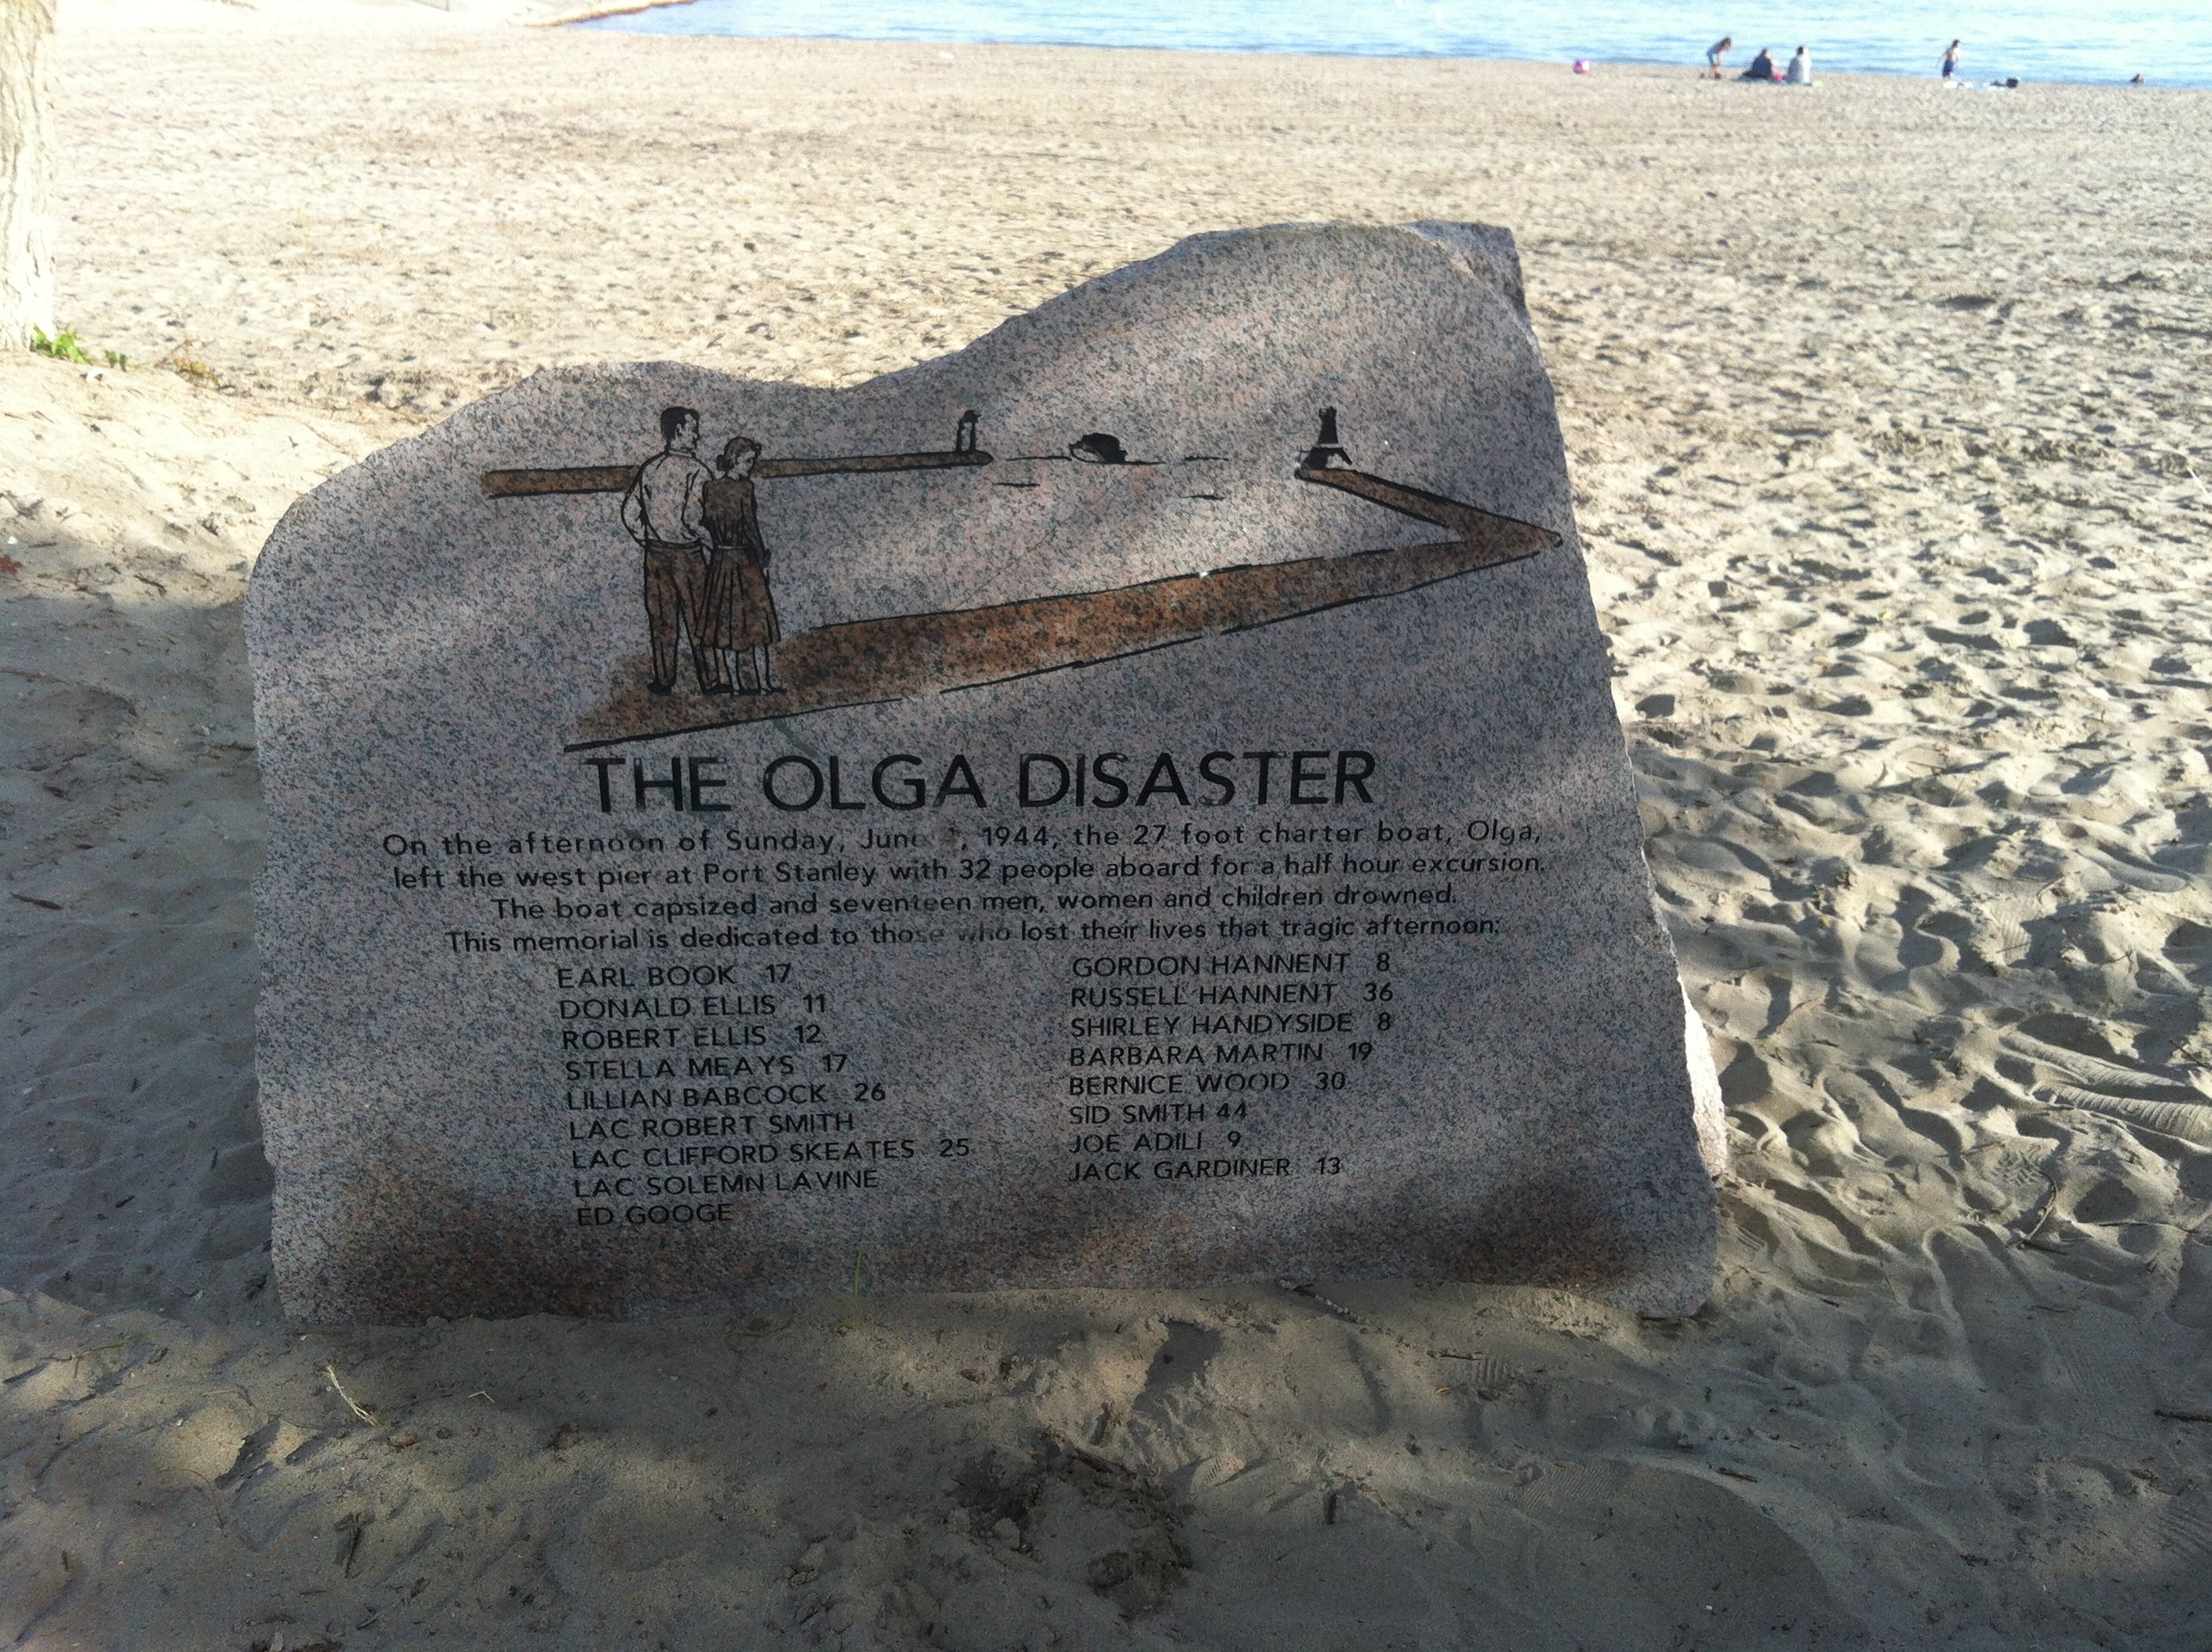 A memorial to The Olga Disaster.